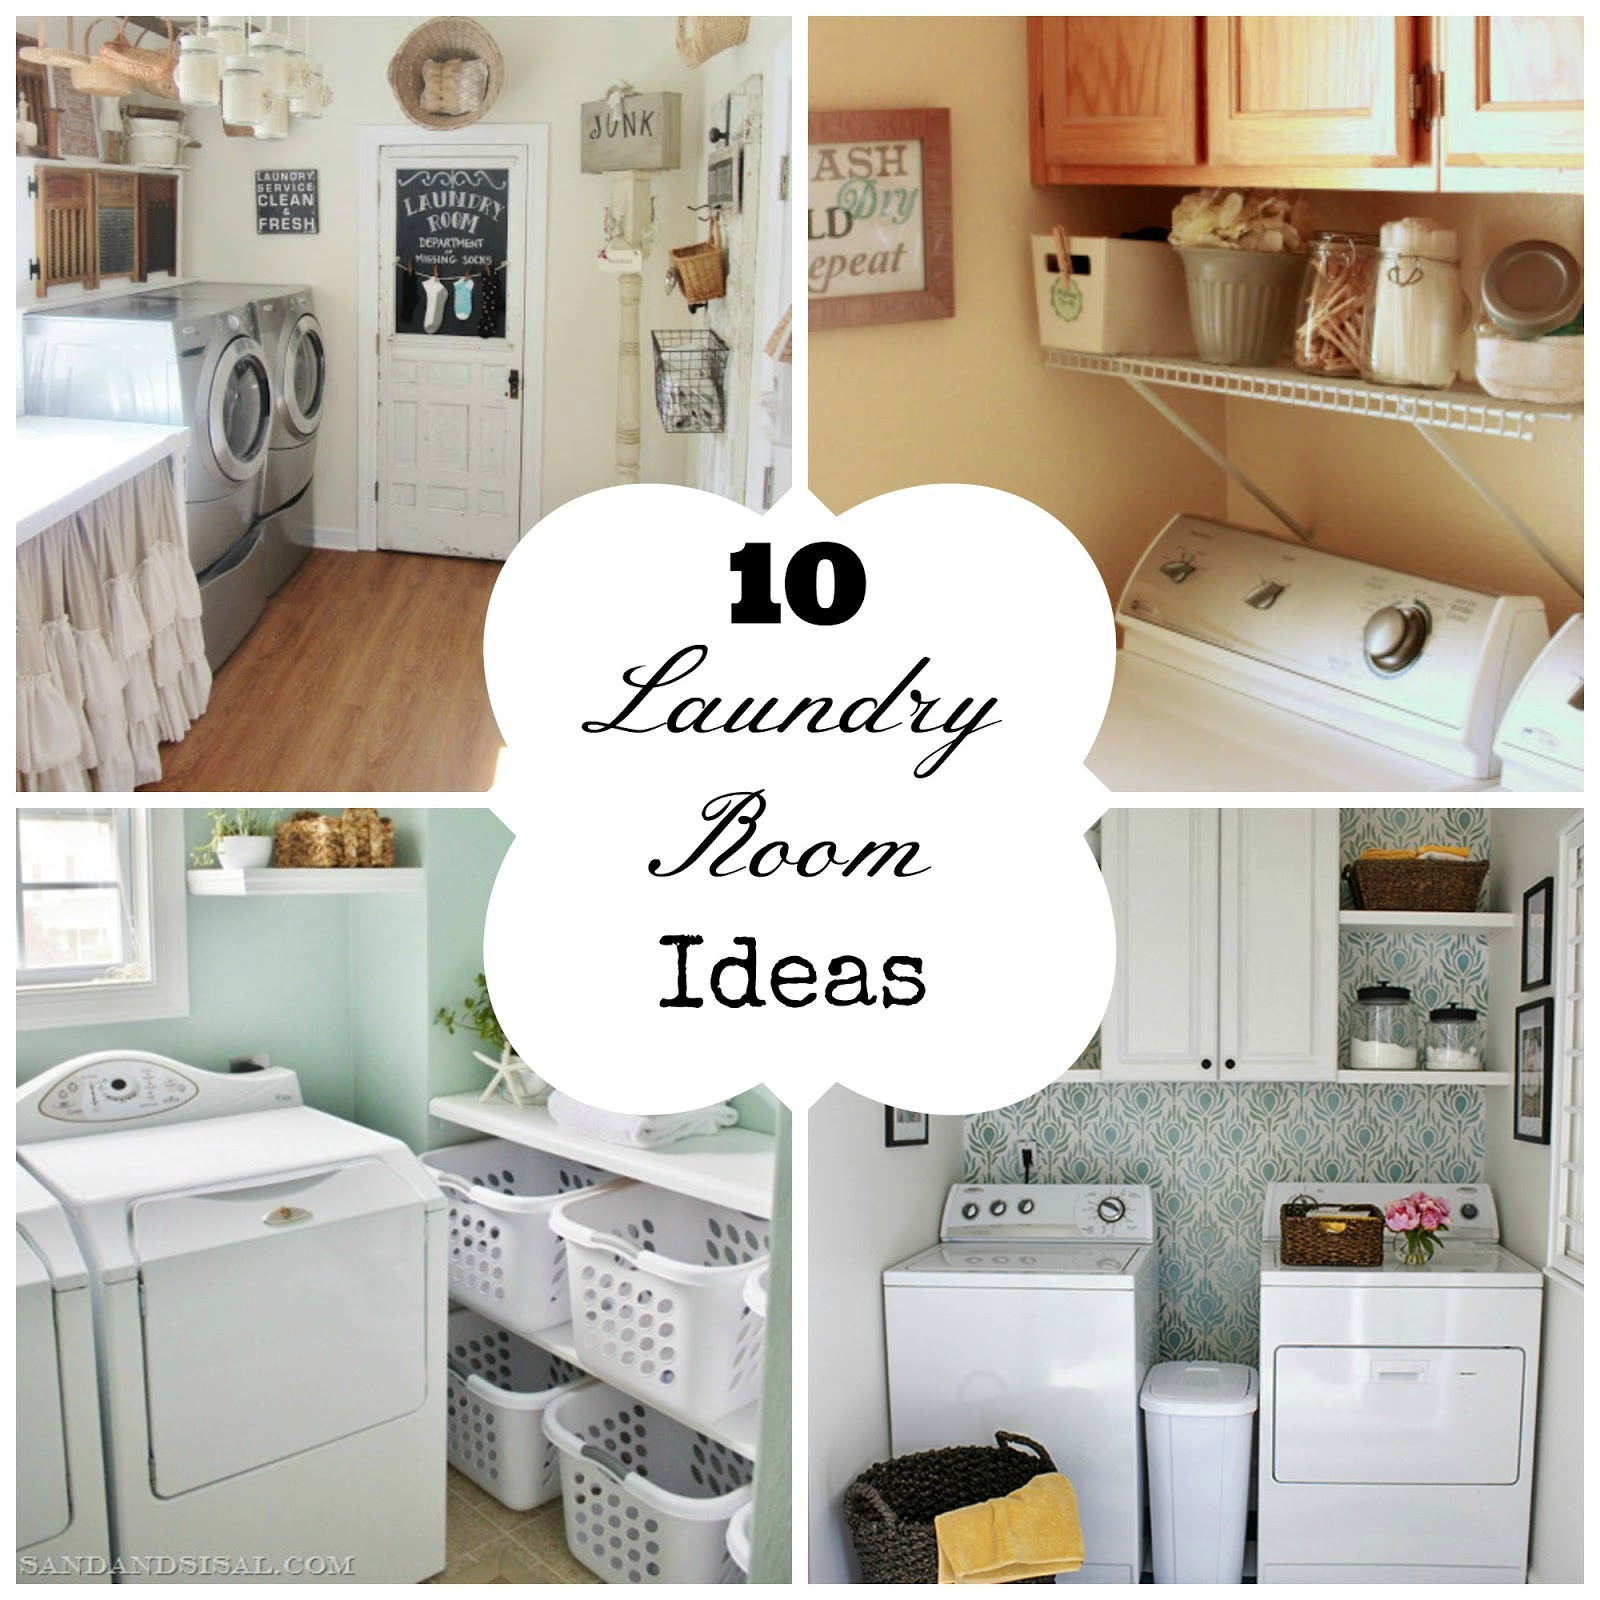 Best ideas about Diy Laundry Room Ideas . Save or Pin 10 Laundry Room Ideas Now.